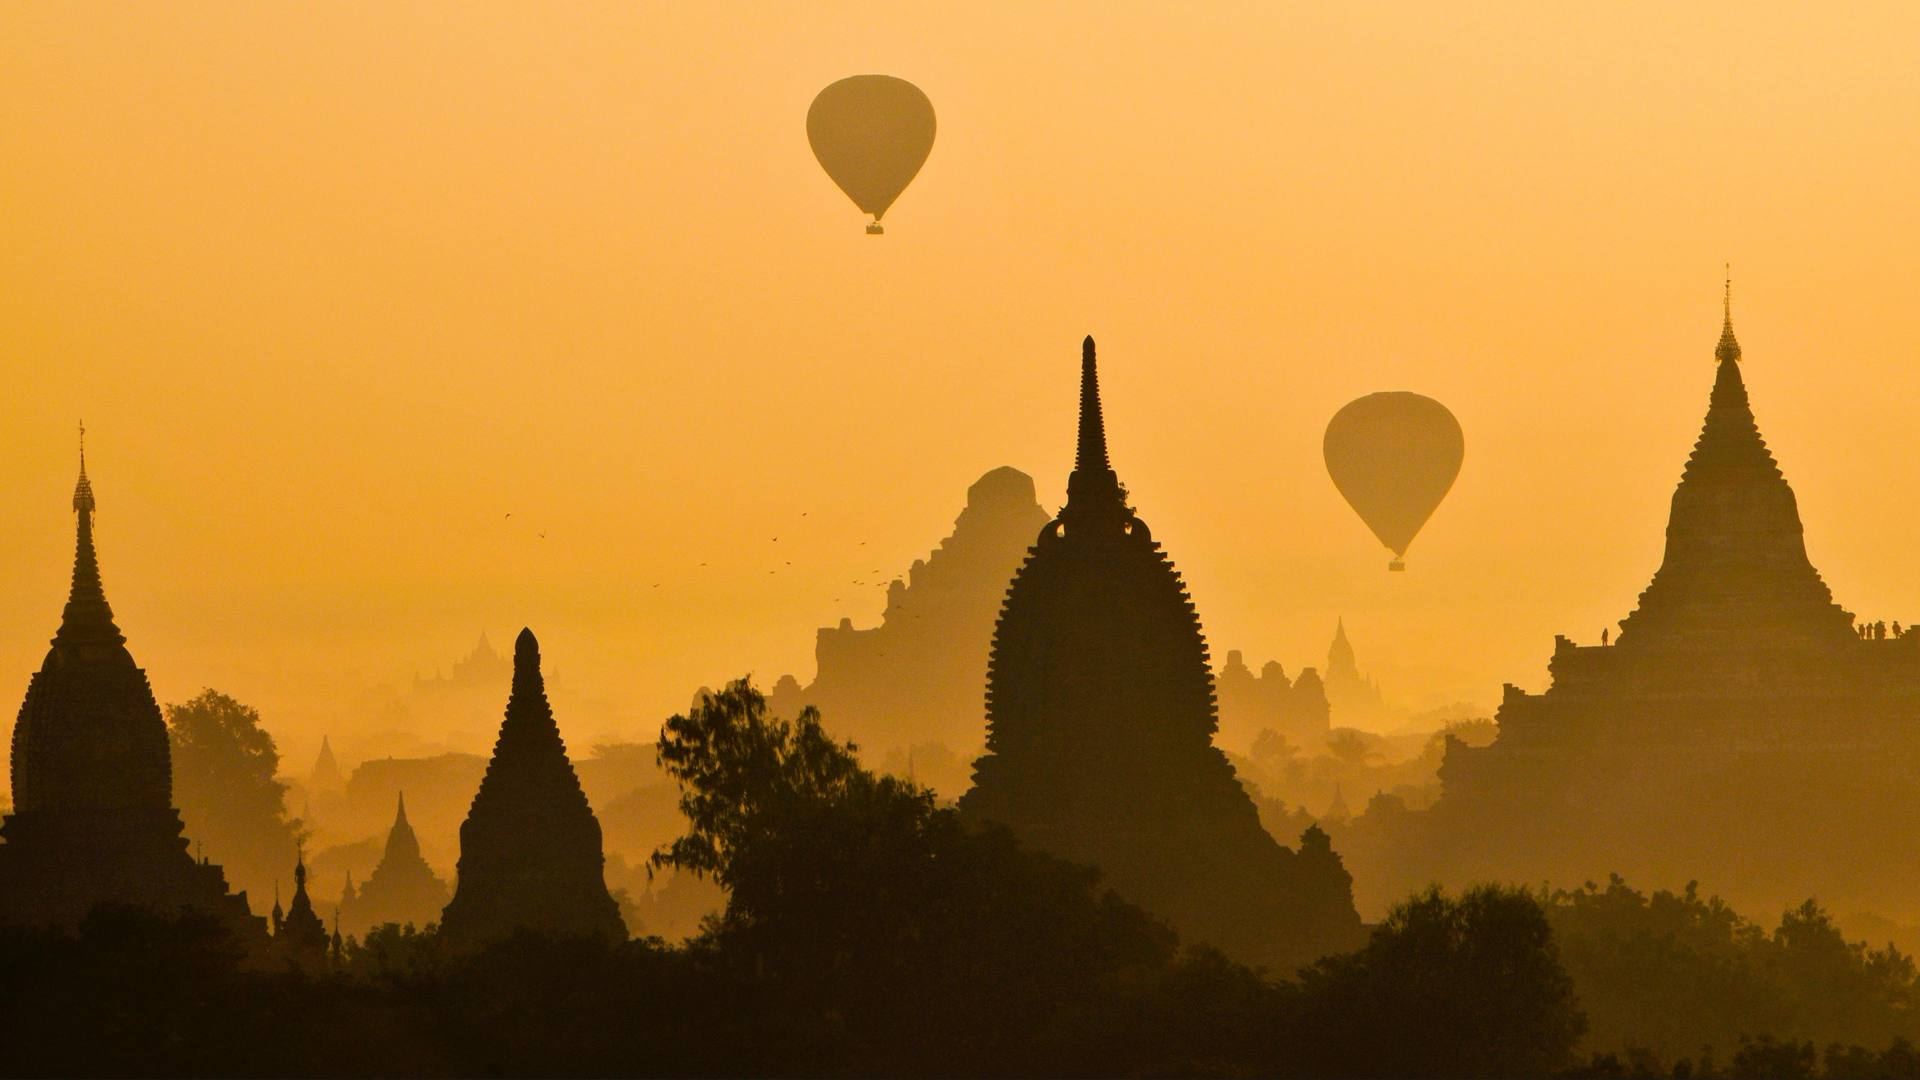 Silhouettes of temples and balloons